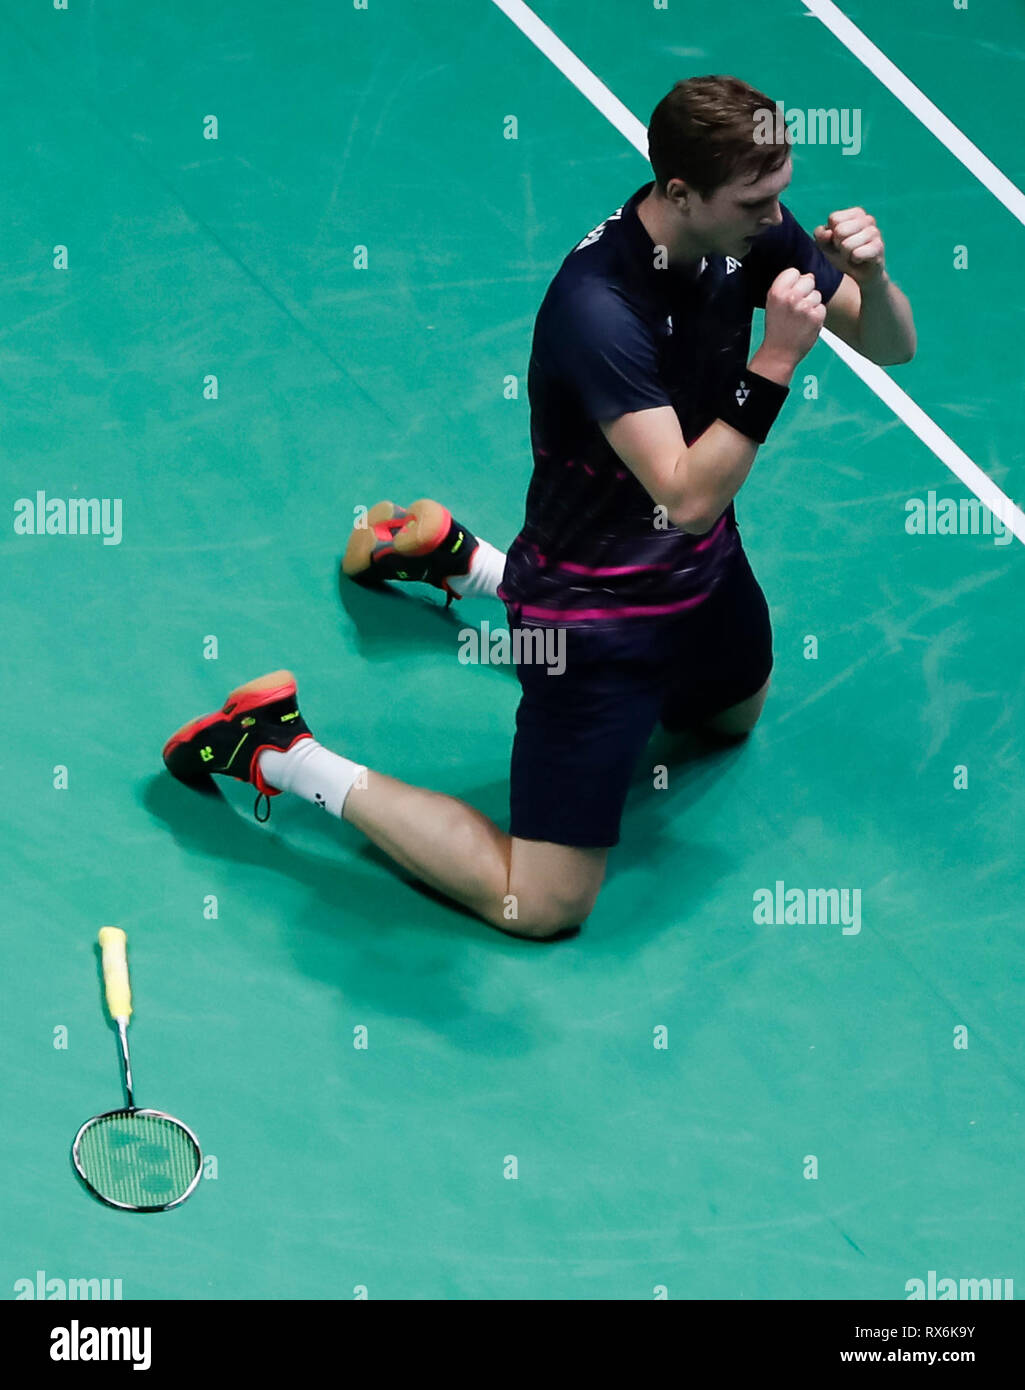 Birmingham. 8th Mar, 2019. Denmark's Viktor Axelsen celebrates after winning the men's singles quarterfinal match with his compatriot Jan O Jorgensen at the All England Open Badminton Championships 2019 in Birmingham, Britain on March 8, 2019. Credit: Han Yan/Xinhua/Alamy Live News - Stock Image